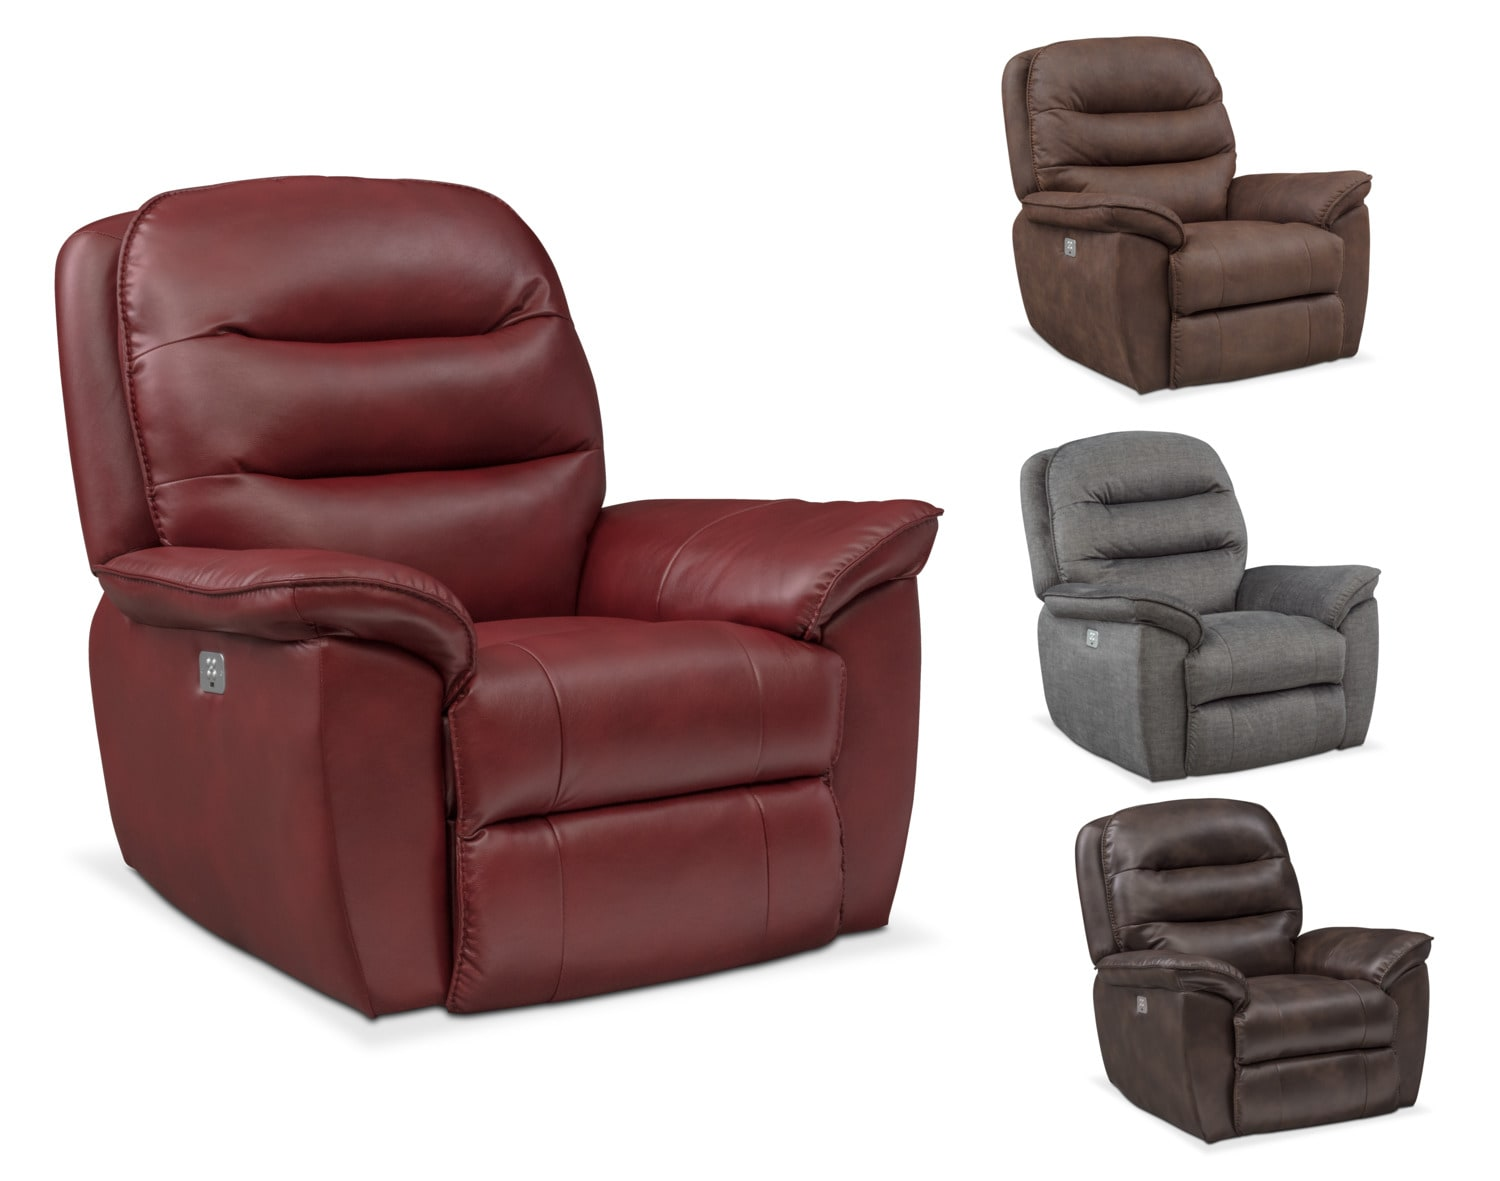 The Regis Dual Power Recliner Collection